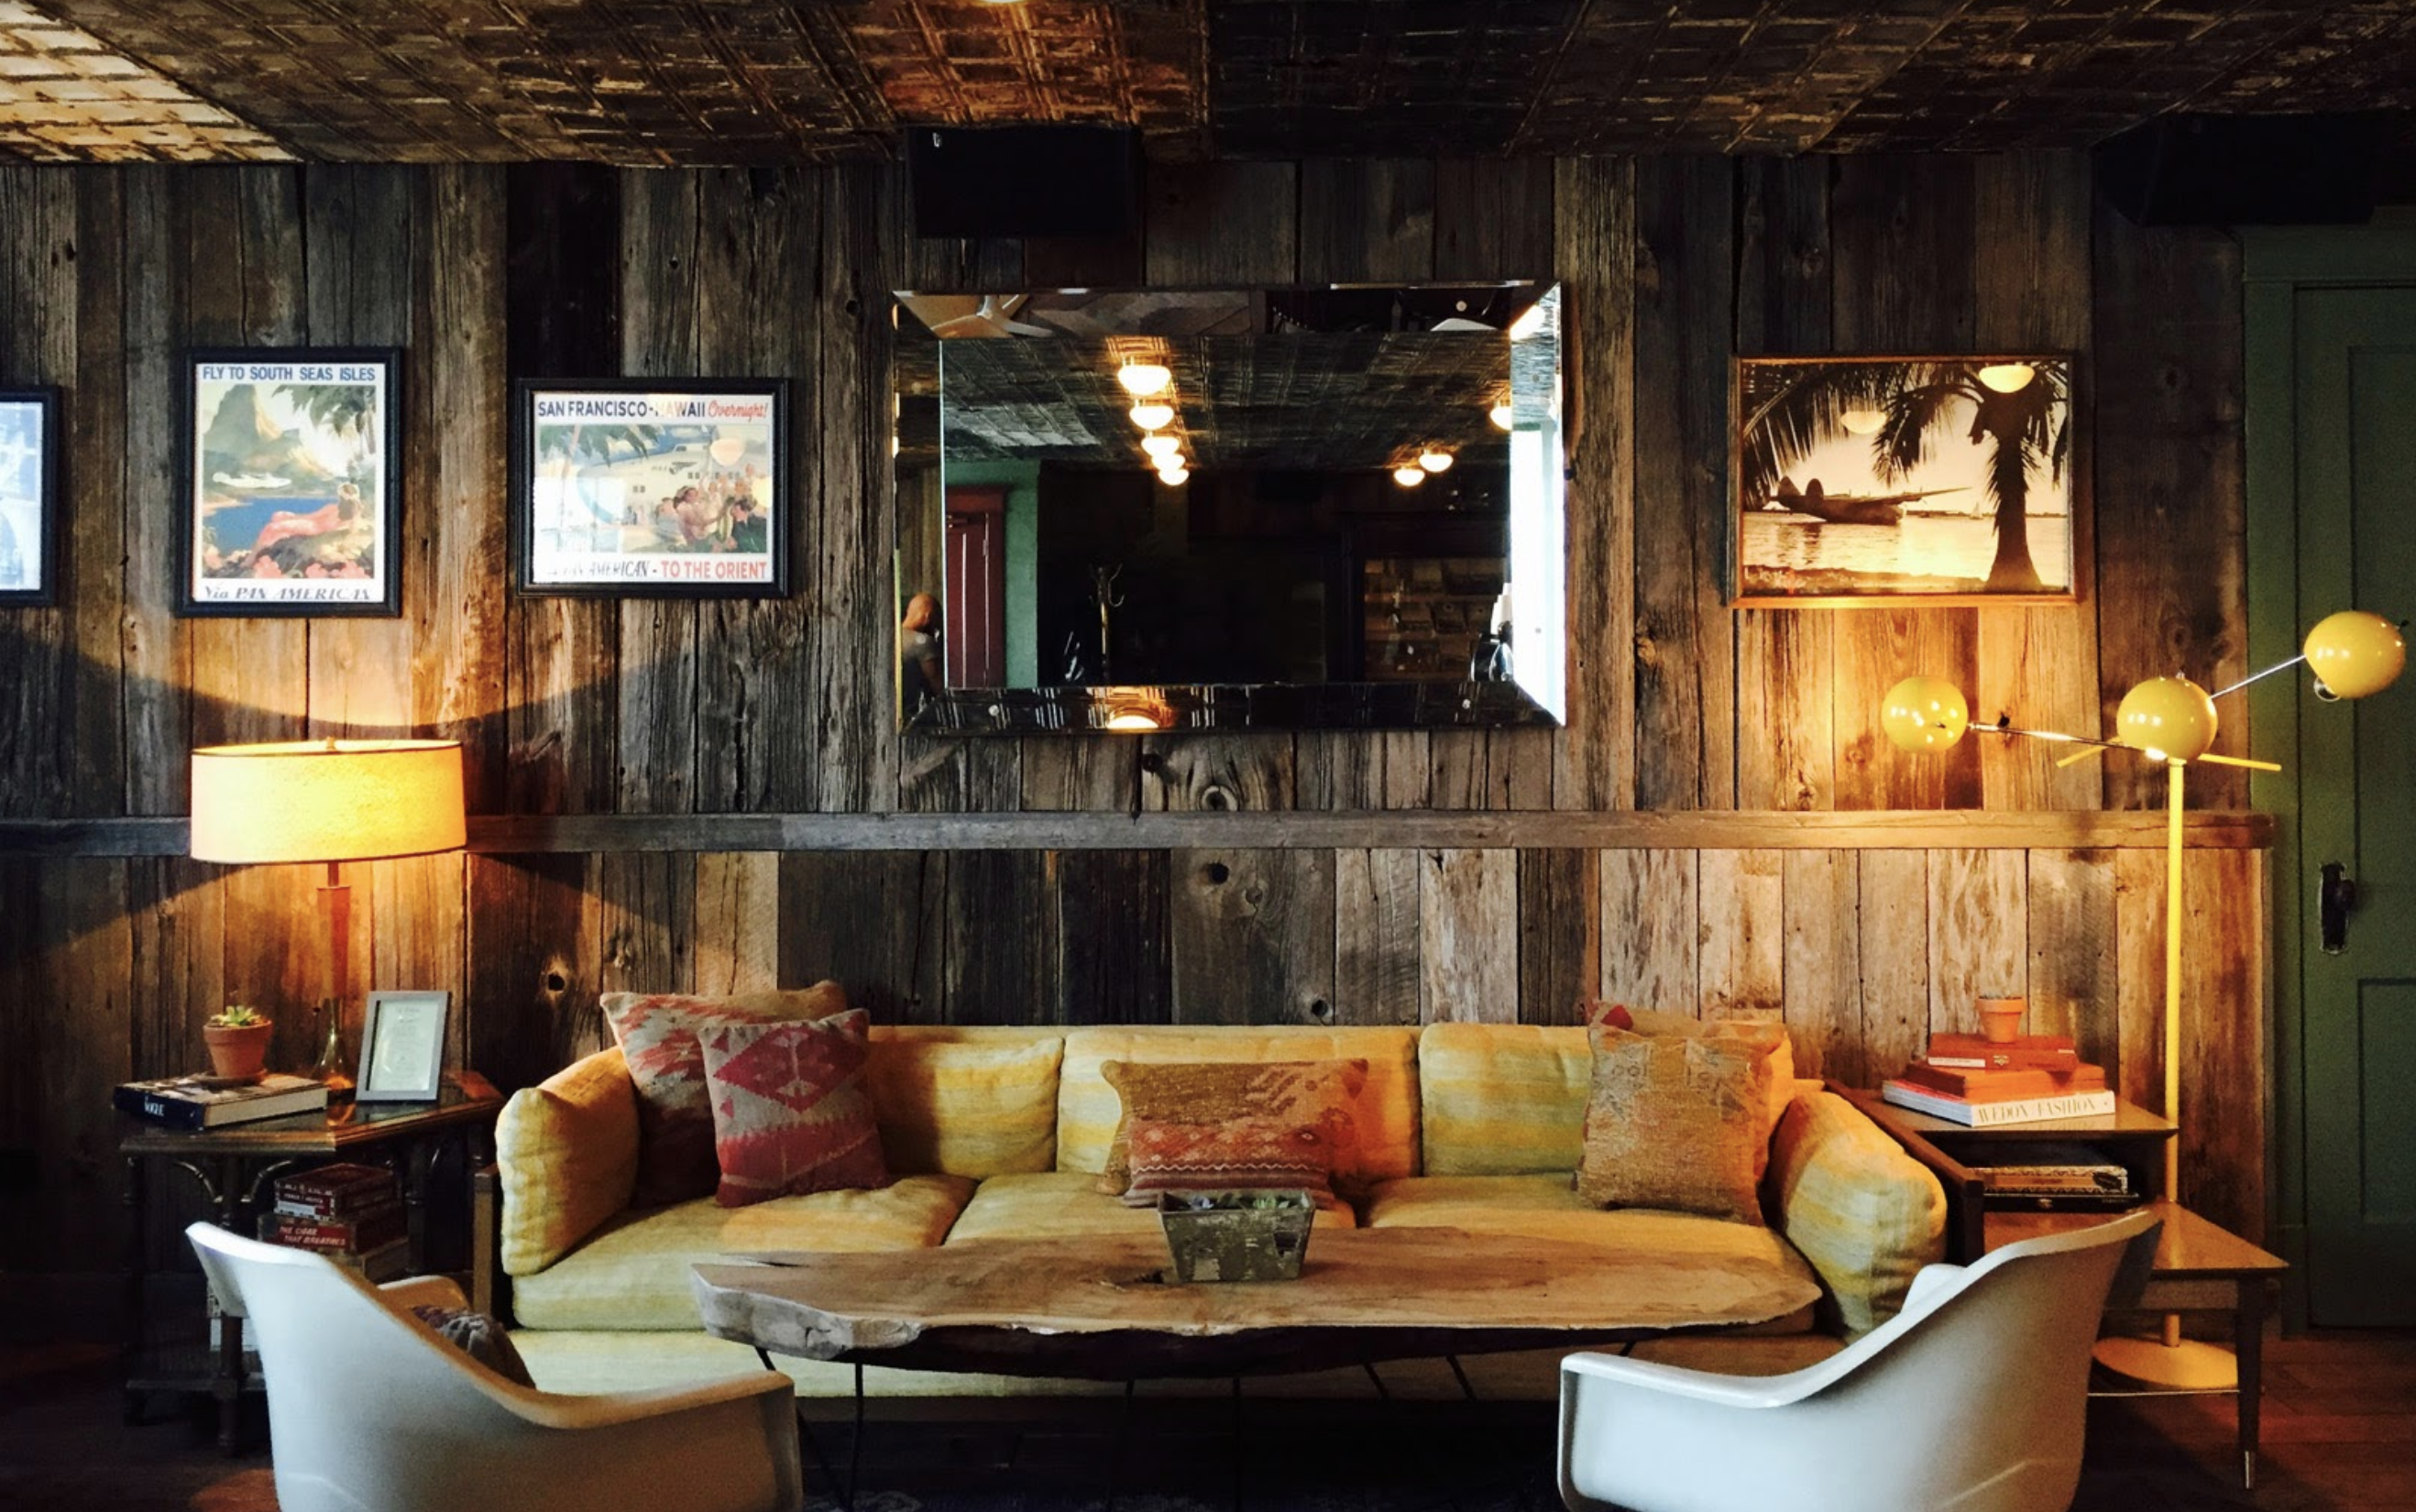 The interior of a restaurant. There is a couch with multiple assorted pillows. There are chairs. The walls are wood paneled.